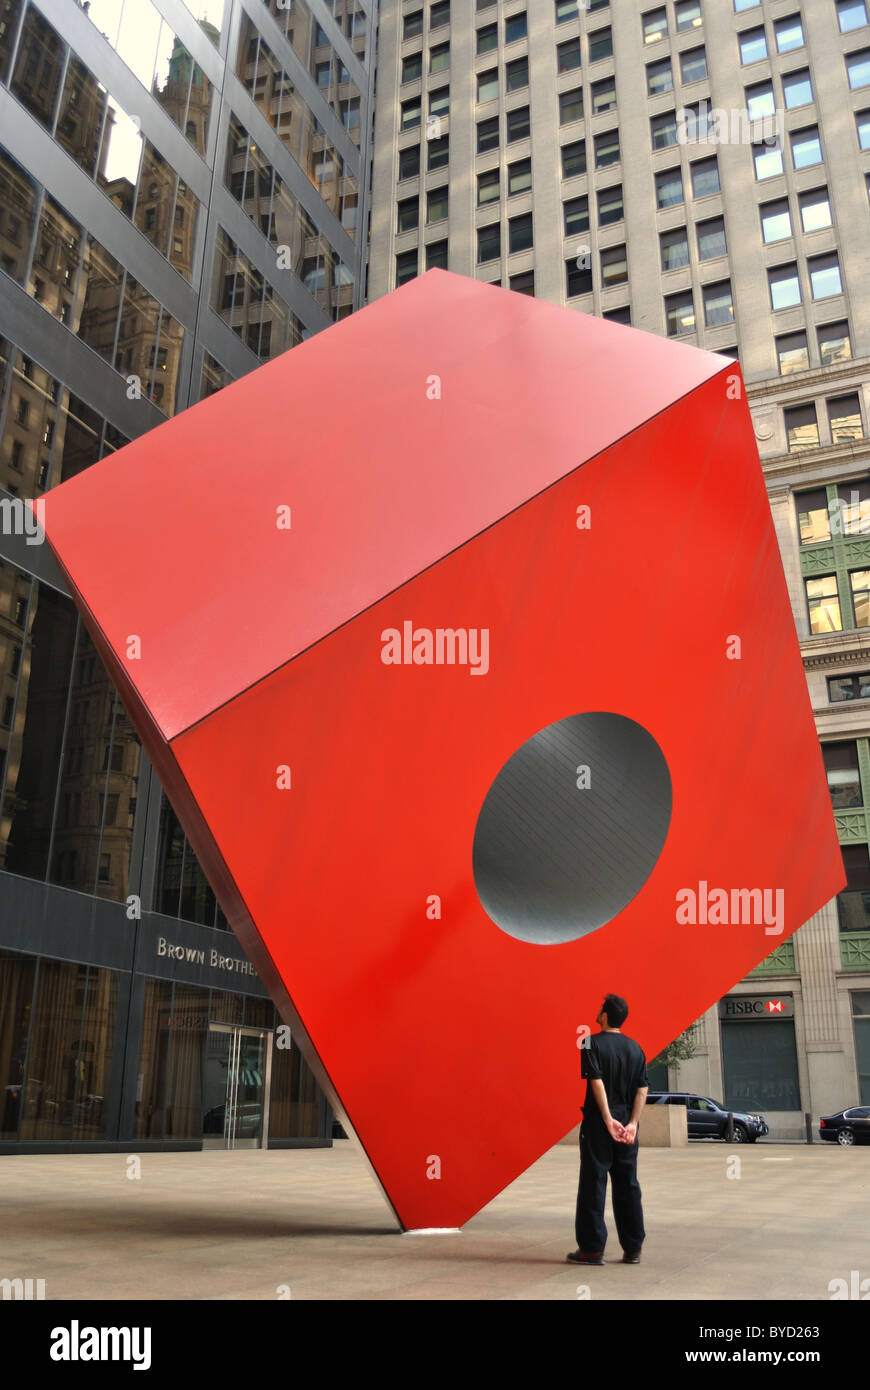 Noguchi's Cube at the HSBC Building in the Financial District of New York City. April 11, 2010. - Stock Image